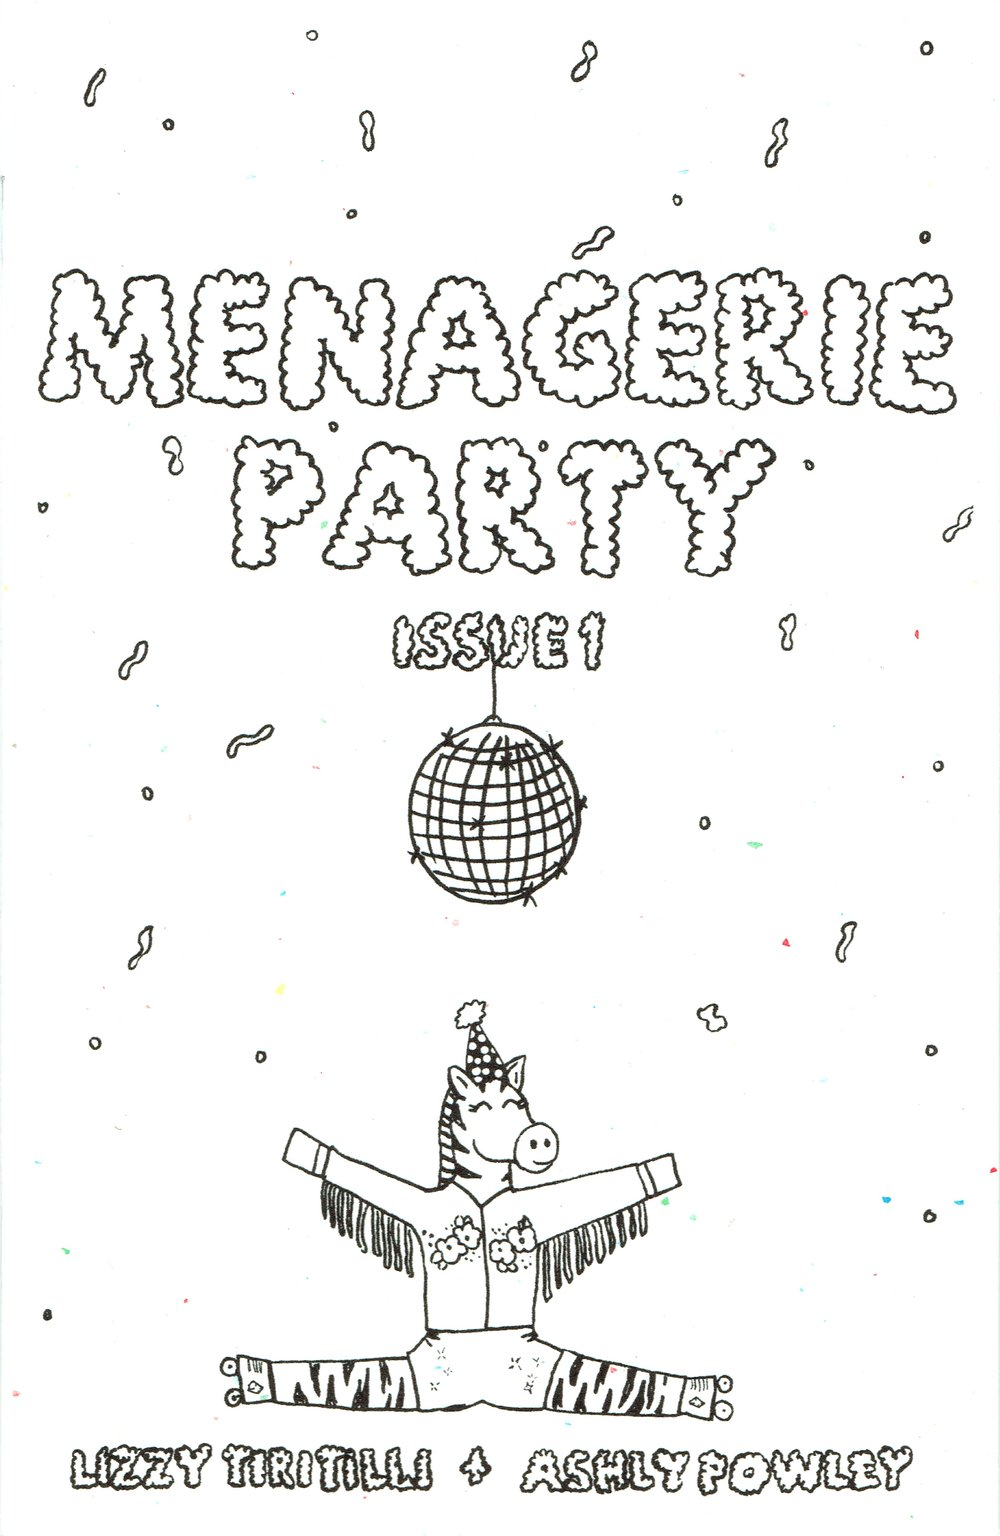 Menagerie Party by Lizzy Tiritilli & Ashly Powley at DINK 2017.